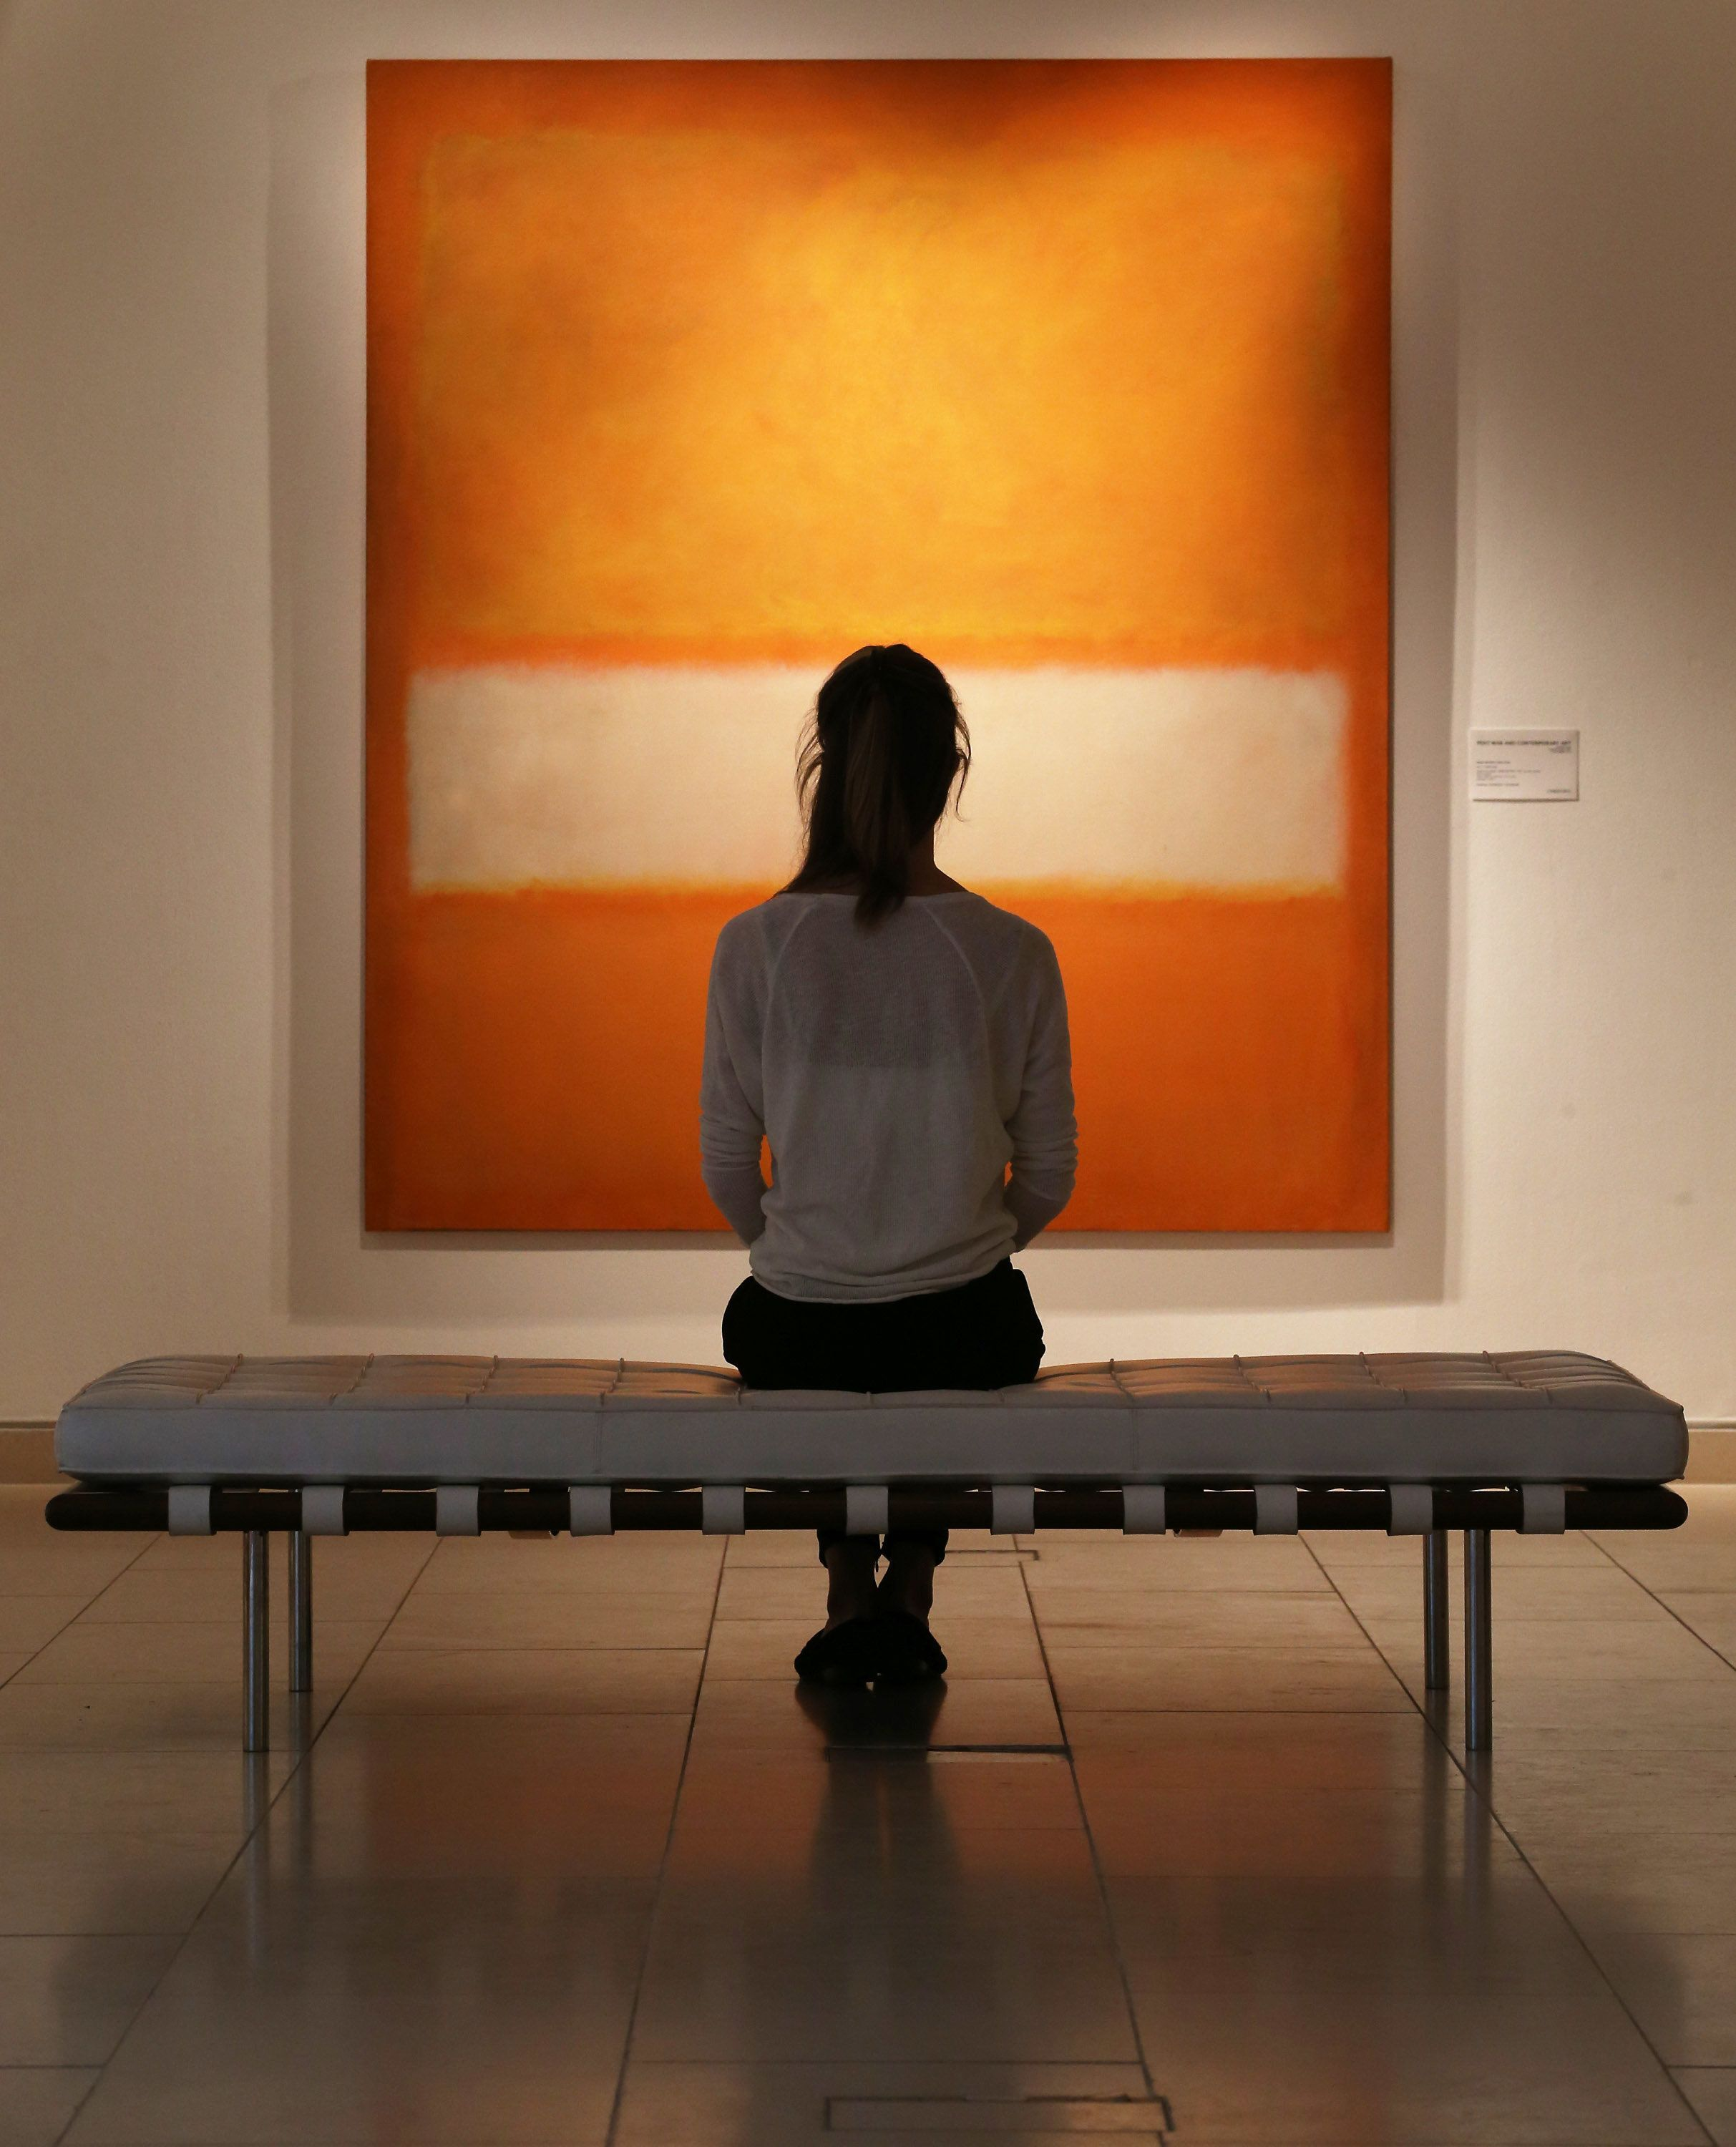 LONDON, ENGLAND - OCTOBER 14:  A member of Christie's staff looks at Mark Rothko's's 'No 11 (Untitled)' on October 14, 2013 in London, England. The work forms part of Christie's New York evening sale of post-war and contemporary art auction on November 12, 2013 and is estimated at $25-$35 million.  (Photo by Peter Macdiarmid/Getty Images)